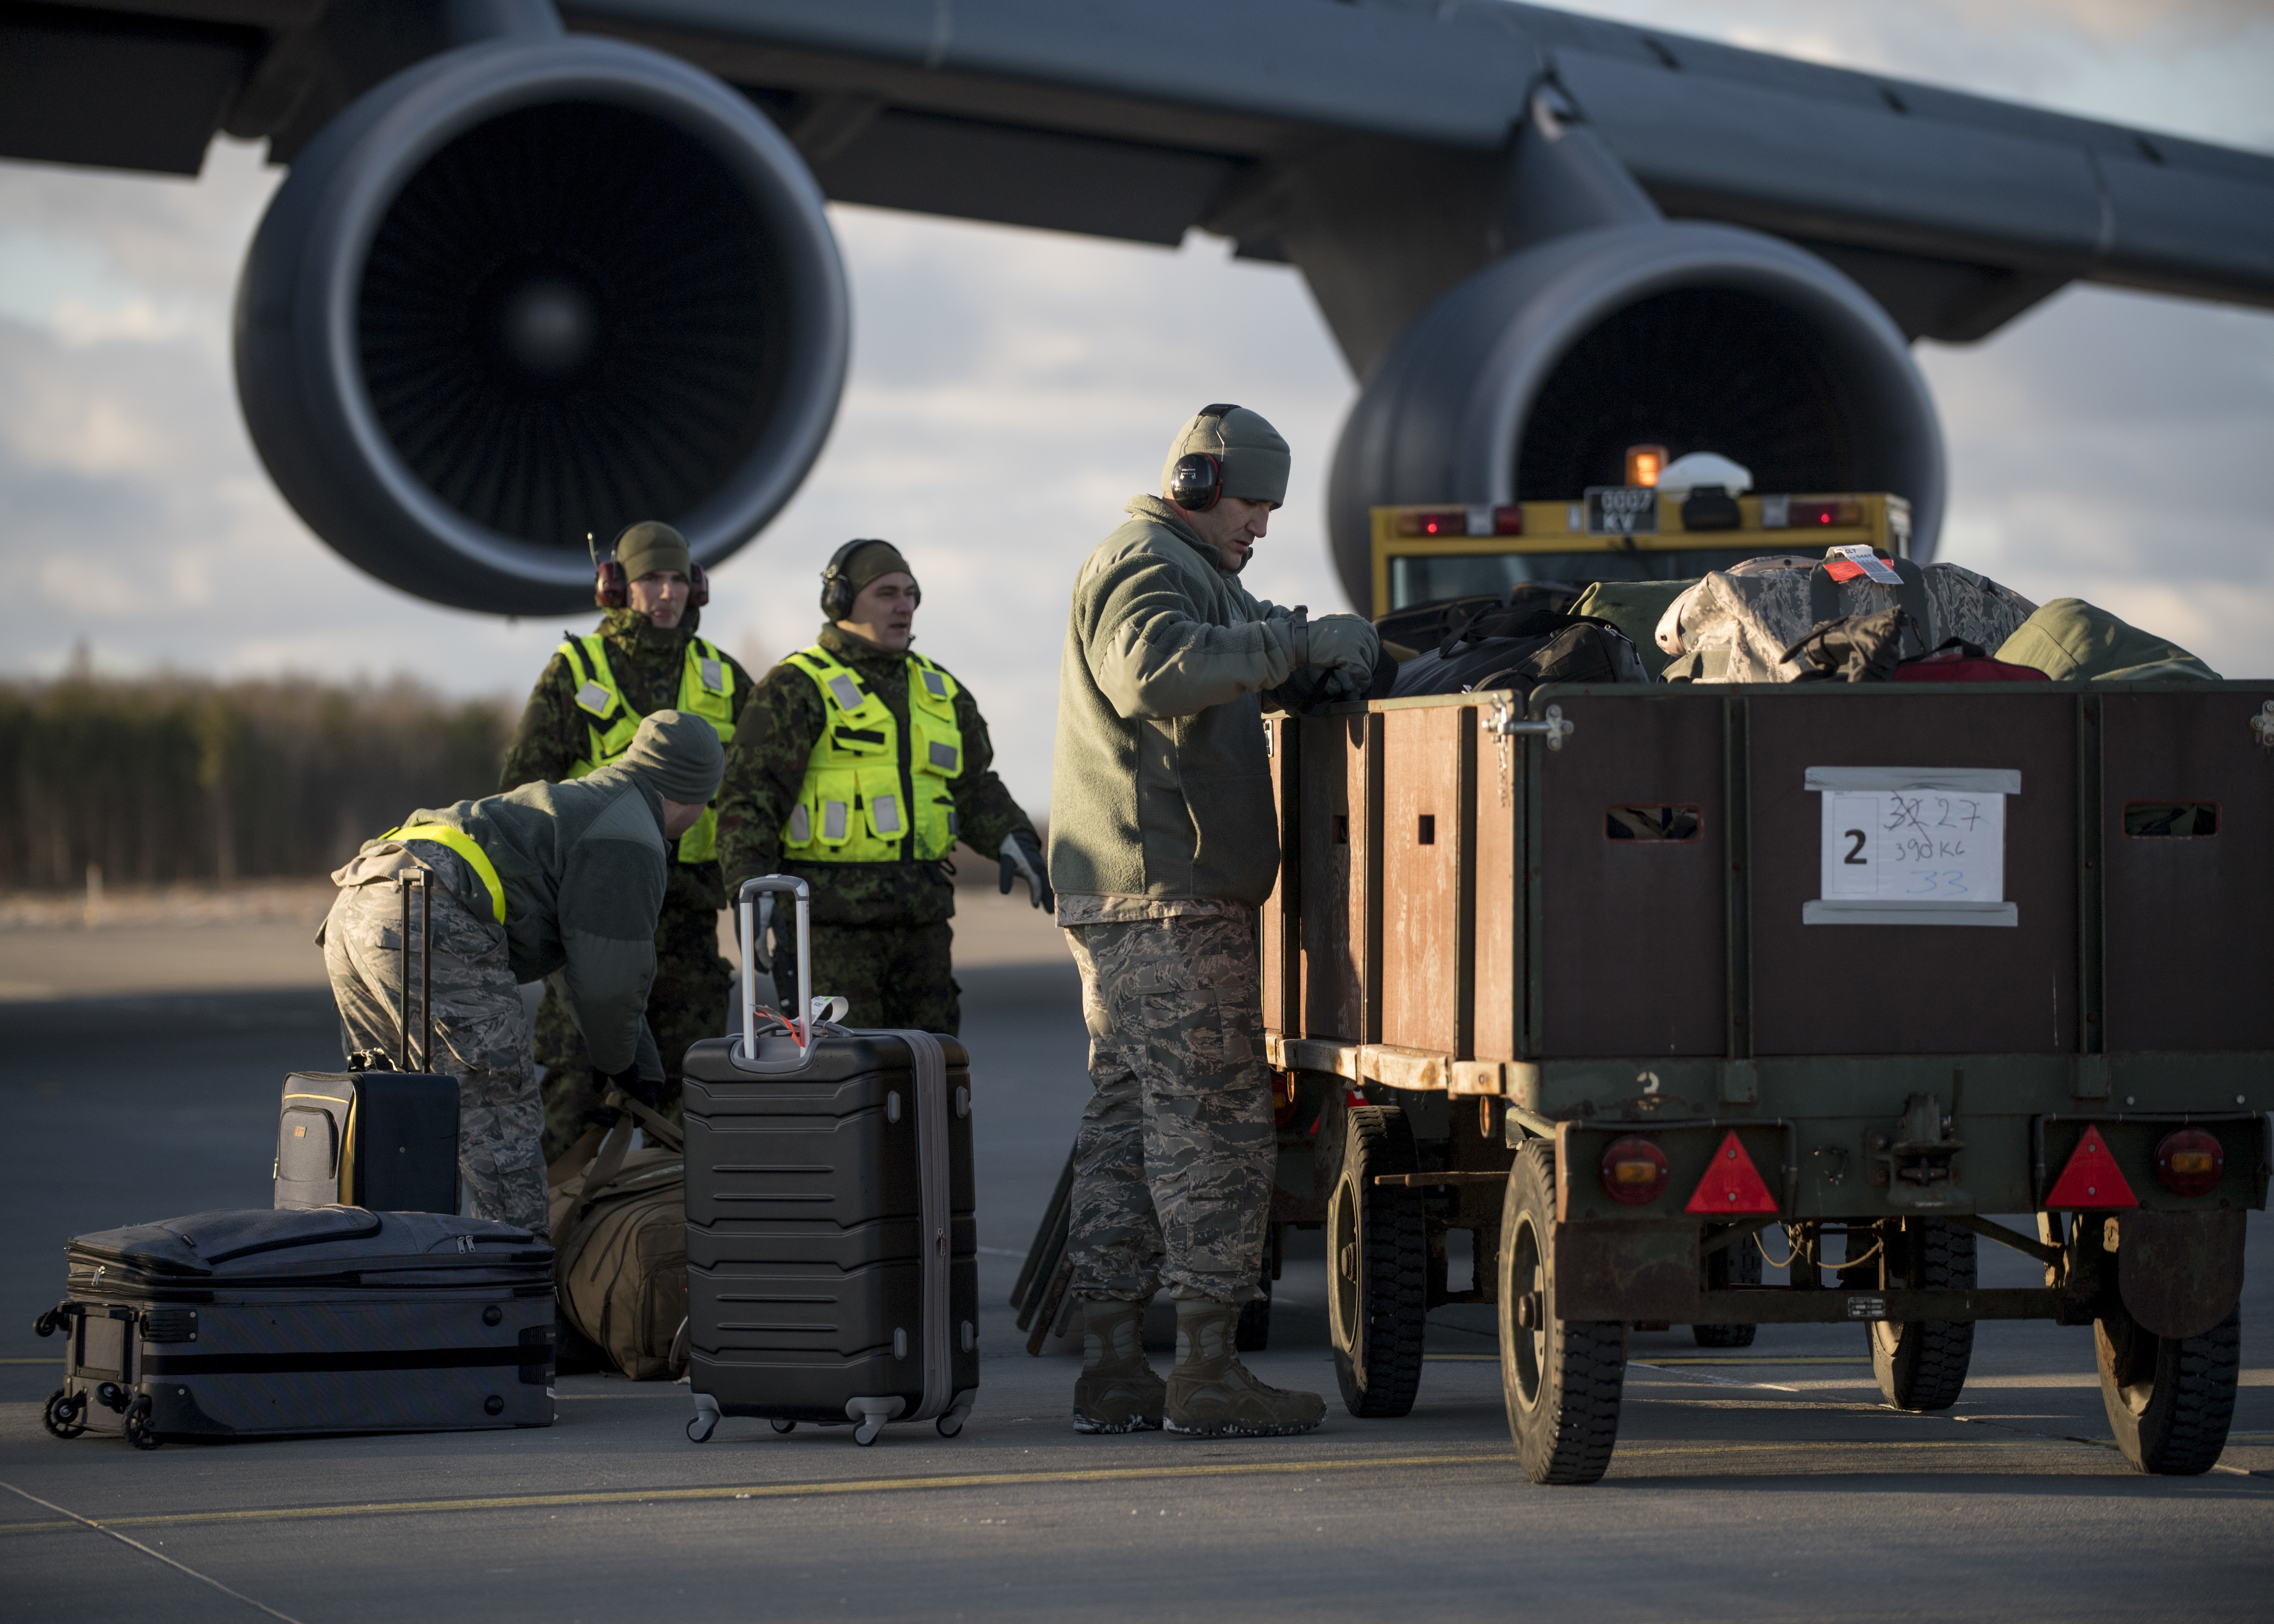 U.S. and Estonian airmen work together to unload supplies from a C-5 Galaxy cargo plane in support of Theater Security Package 18.1, Jan. 8, 2018. This TSP highlights the U.S.'s ability to deploy fighter aircraft in support of our partners and allies in the European theater and around the world. (DoD photo by MC3 Cody Hendri)